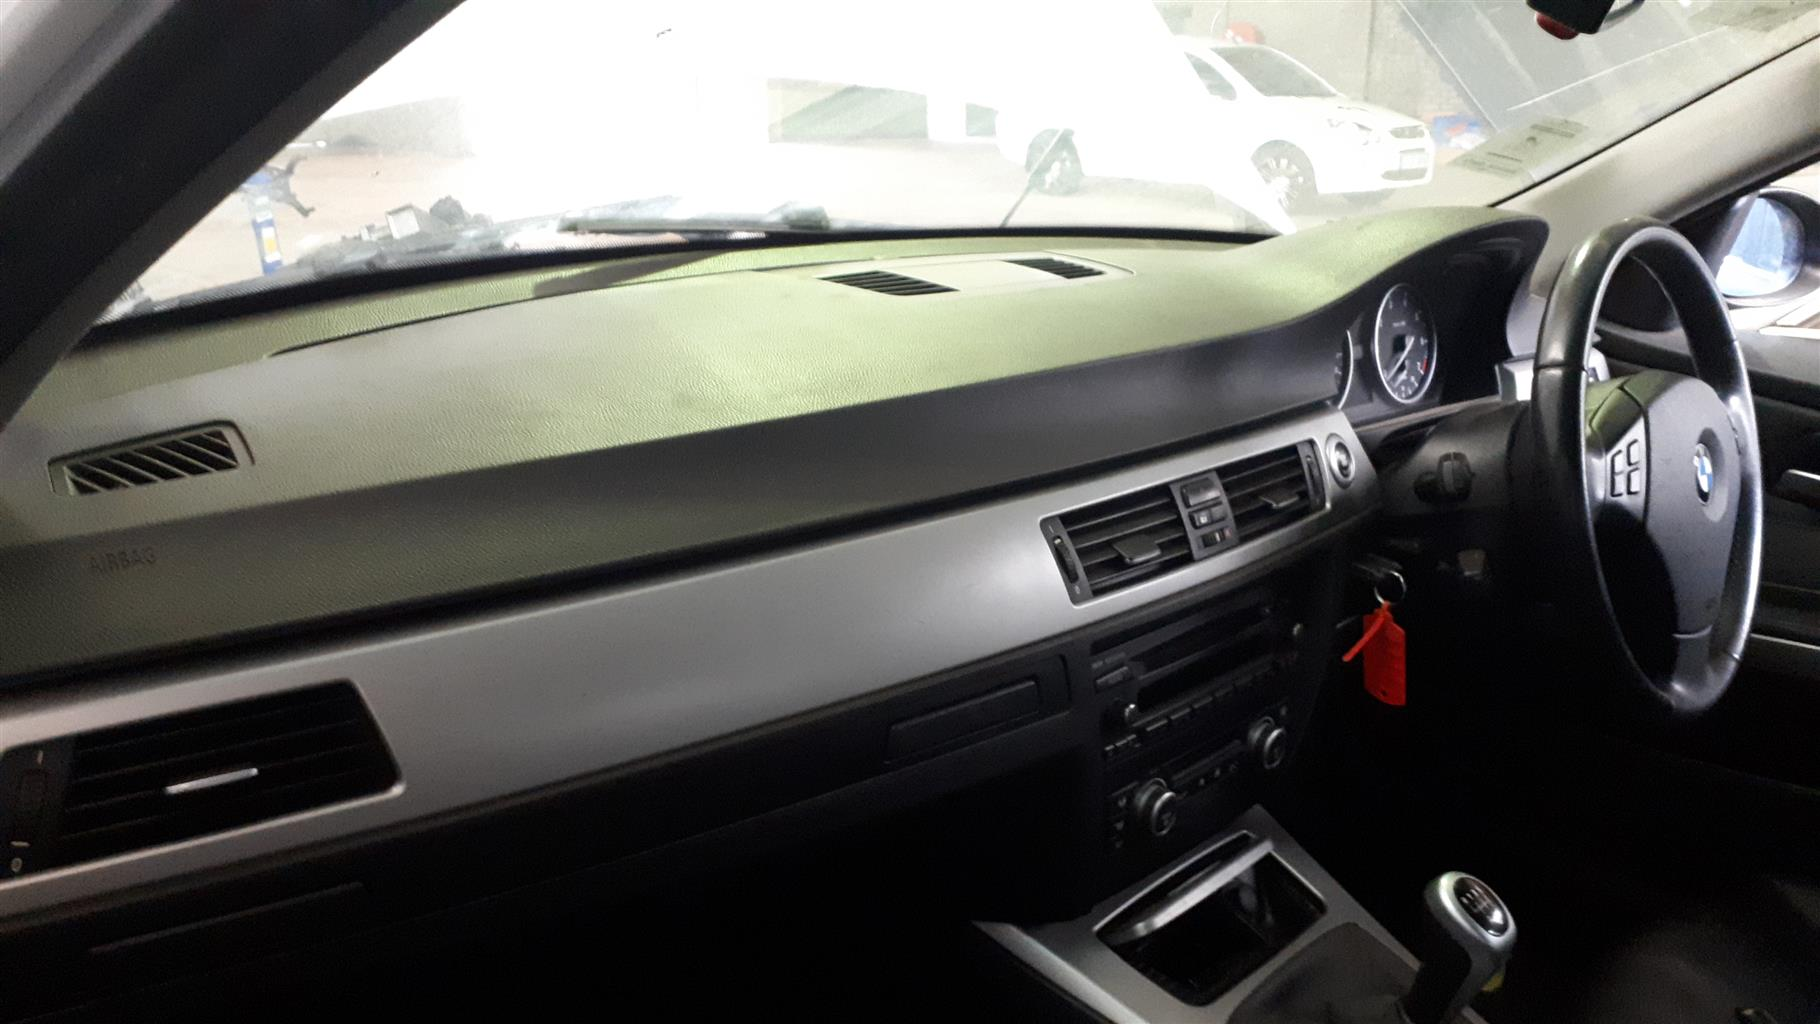 Bmw E90 3 Series Dashboard For Sale Parts Spares Junk Mail